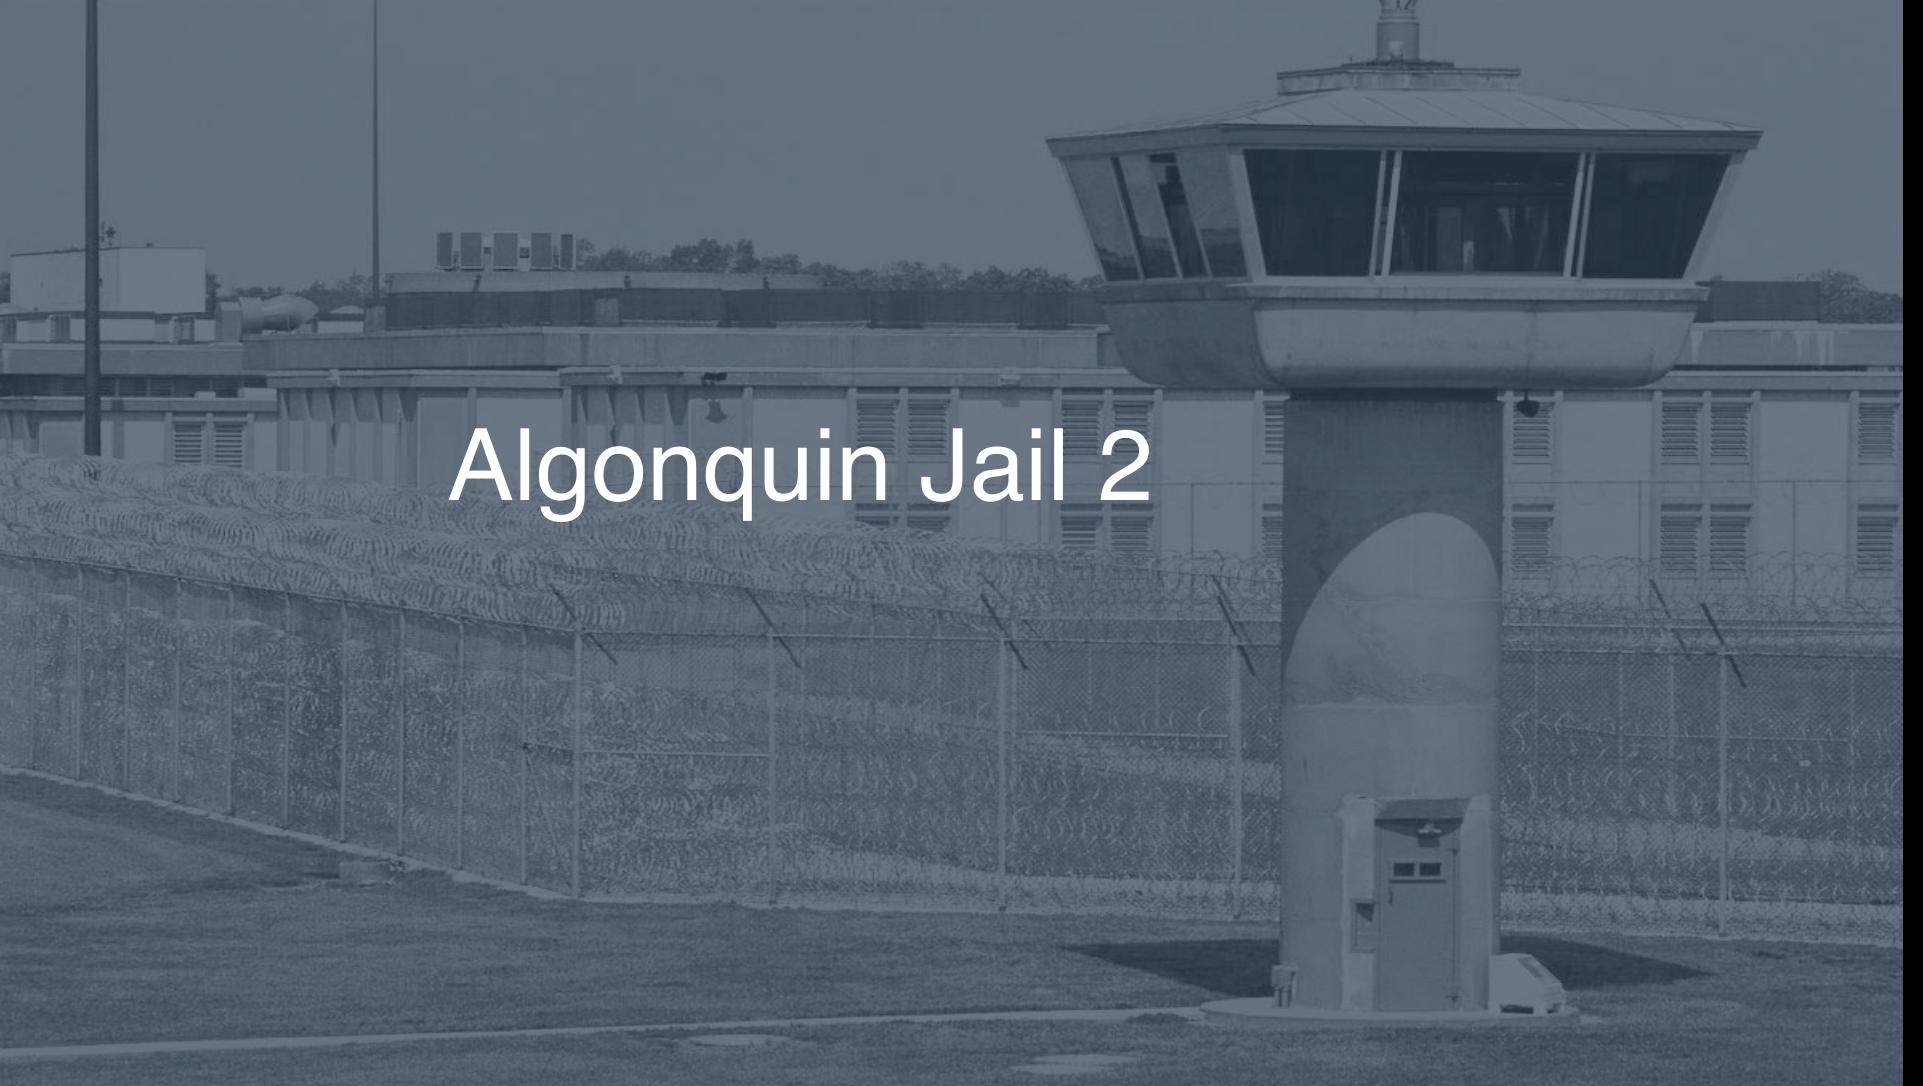 Algonquin Jail correctional facility picture